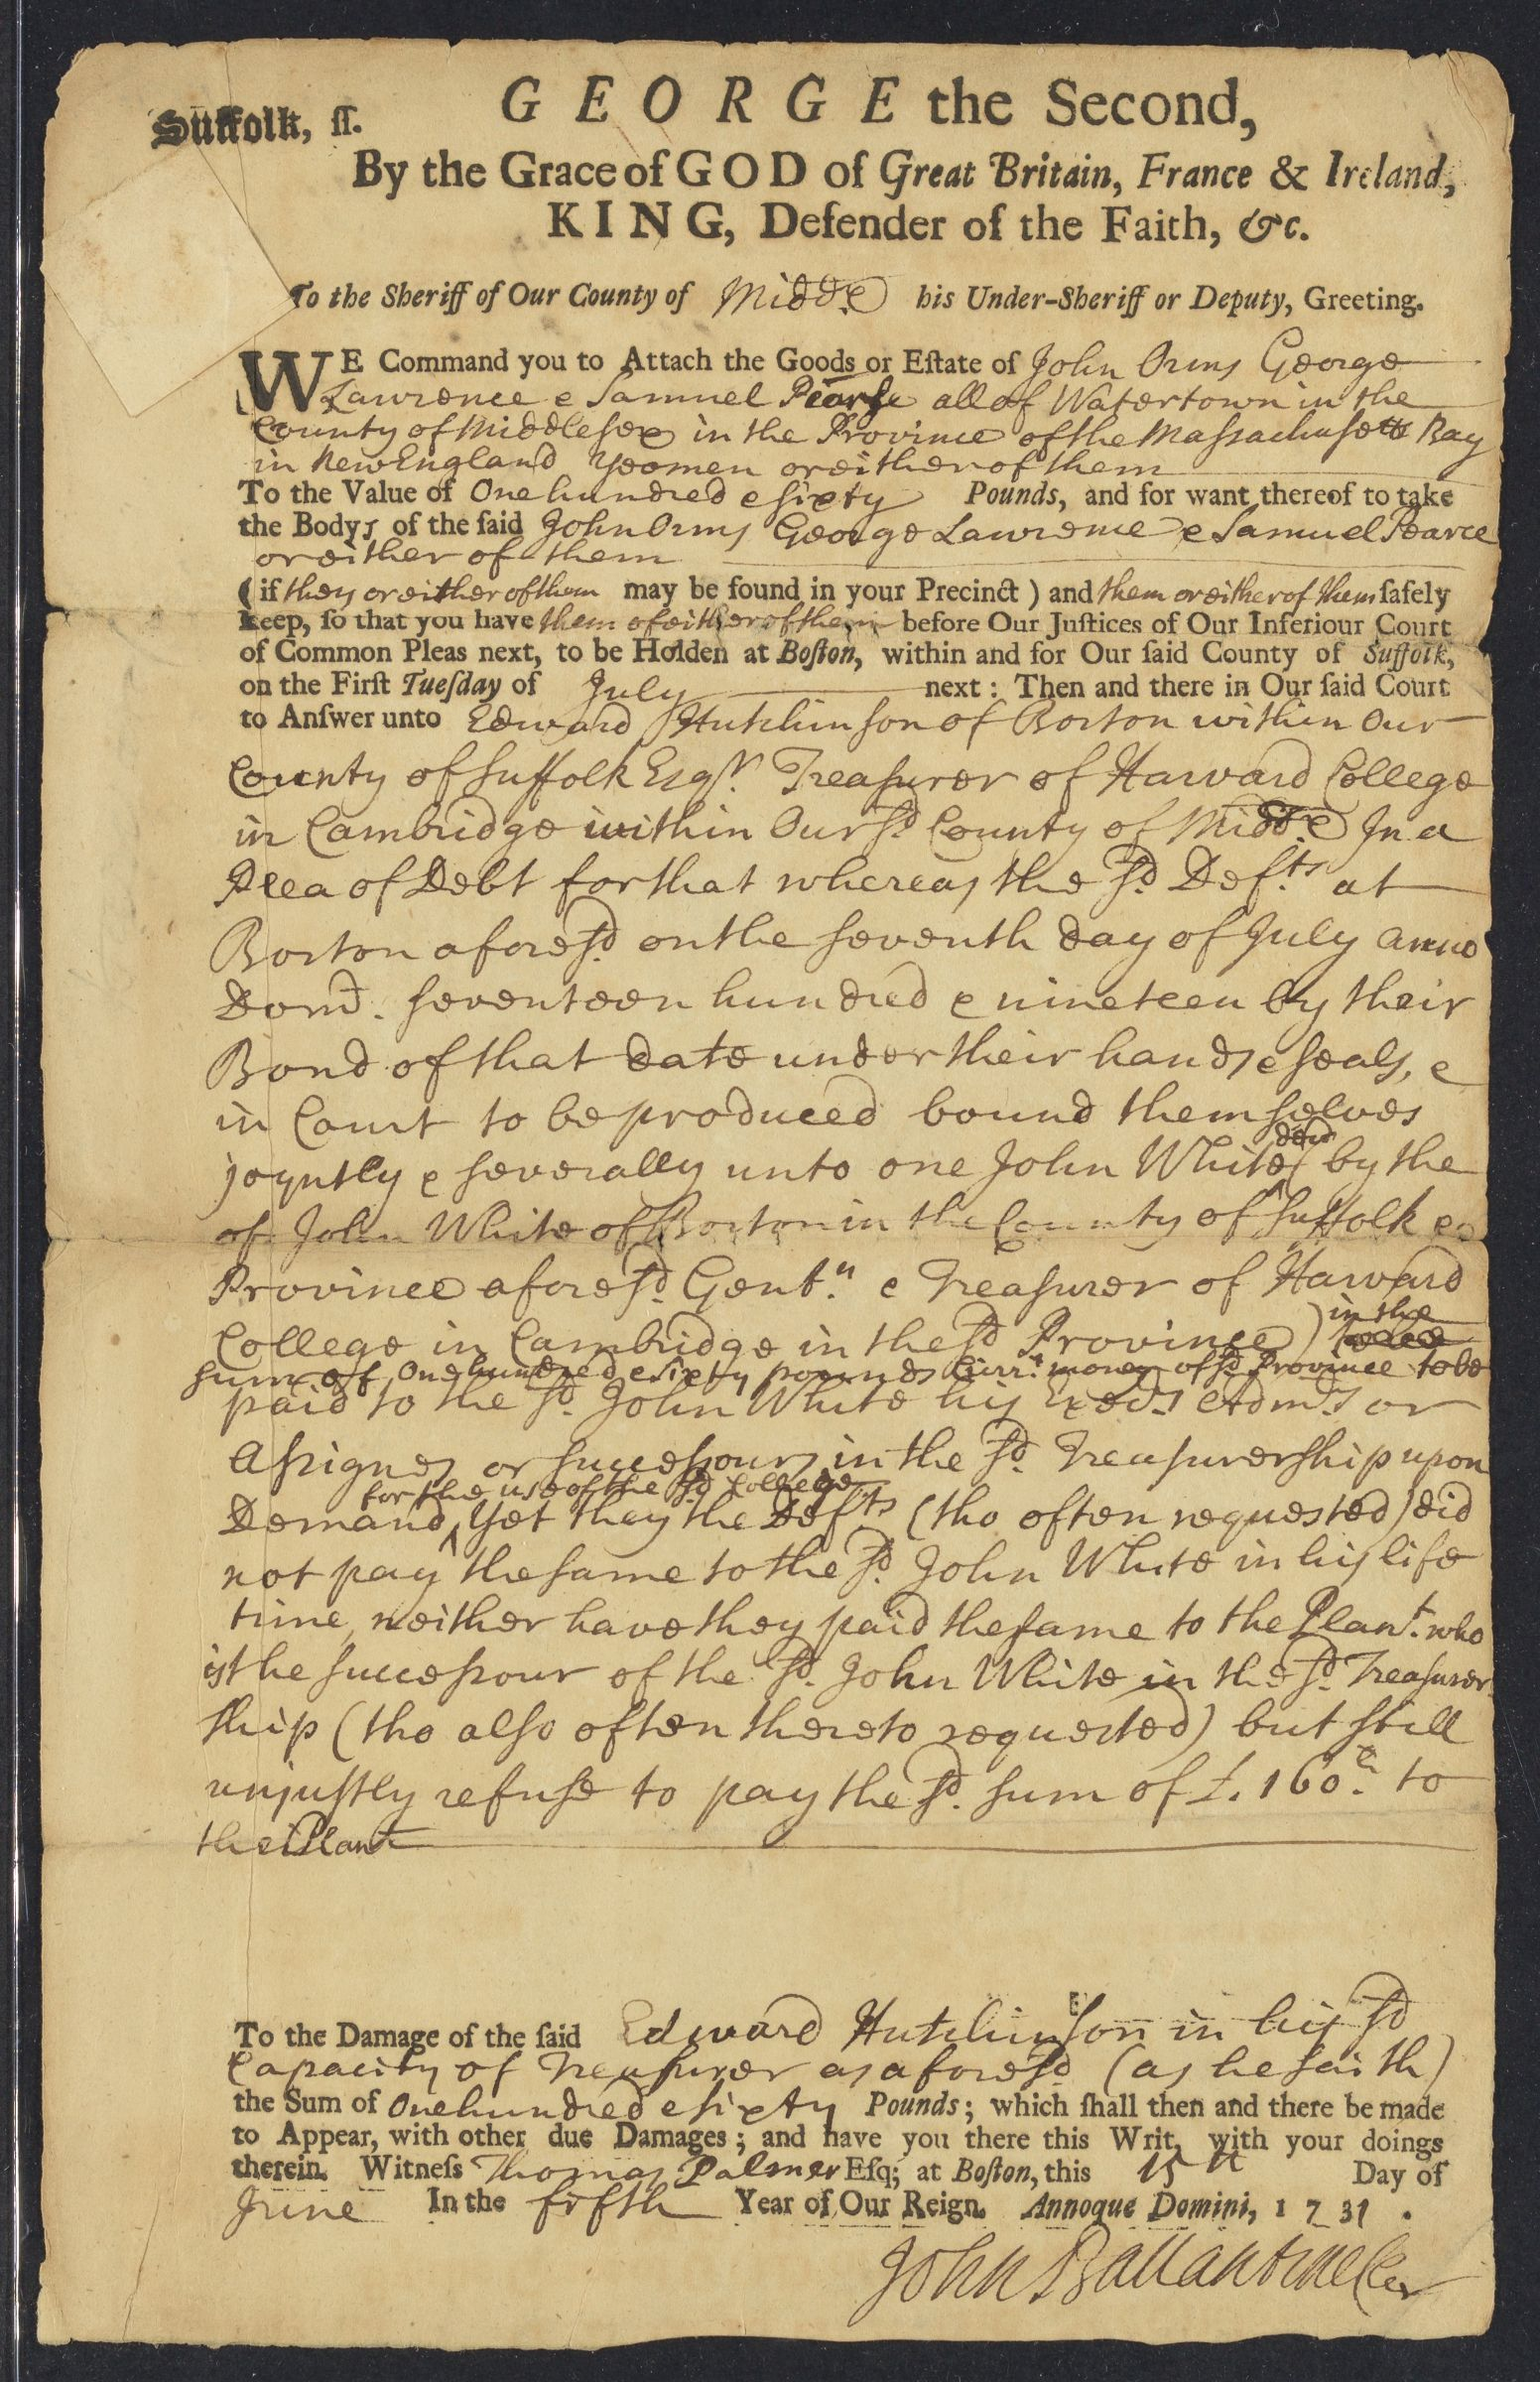 Writ for the attachment of goods or estate: action brought by Edward Hutchinson, Treasurer of Harvard College, 1731 June 5